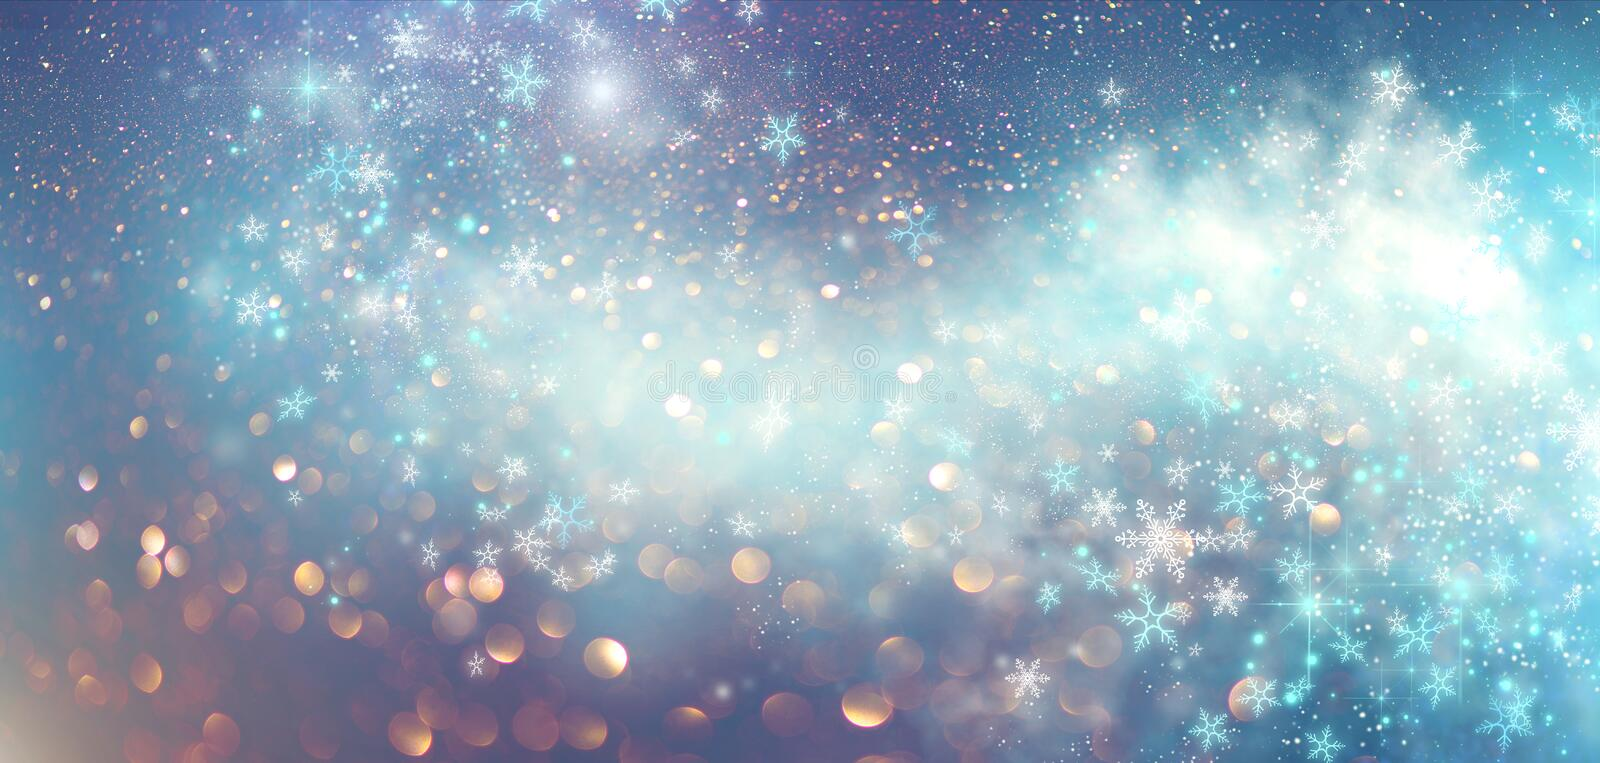 Winter Christmas and New Year glittering snow flakes swirl bokeh background, backdrop with sparkling blue stars, holiday garland. Magic glowing stars, lights royalty free stock photography